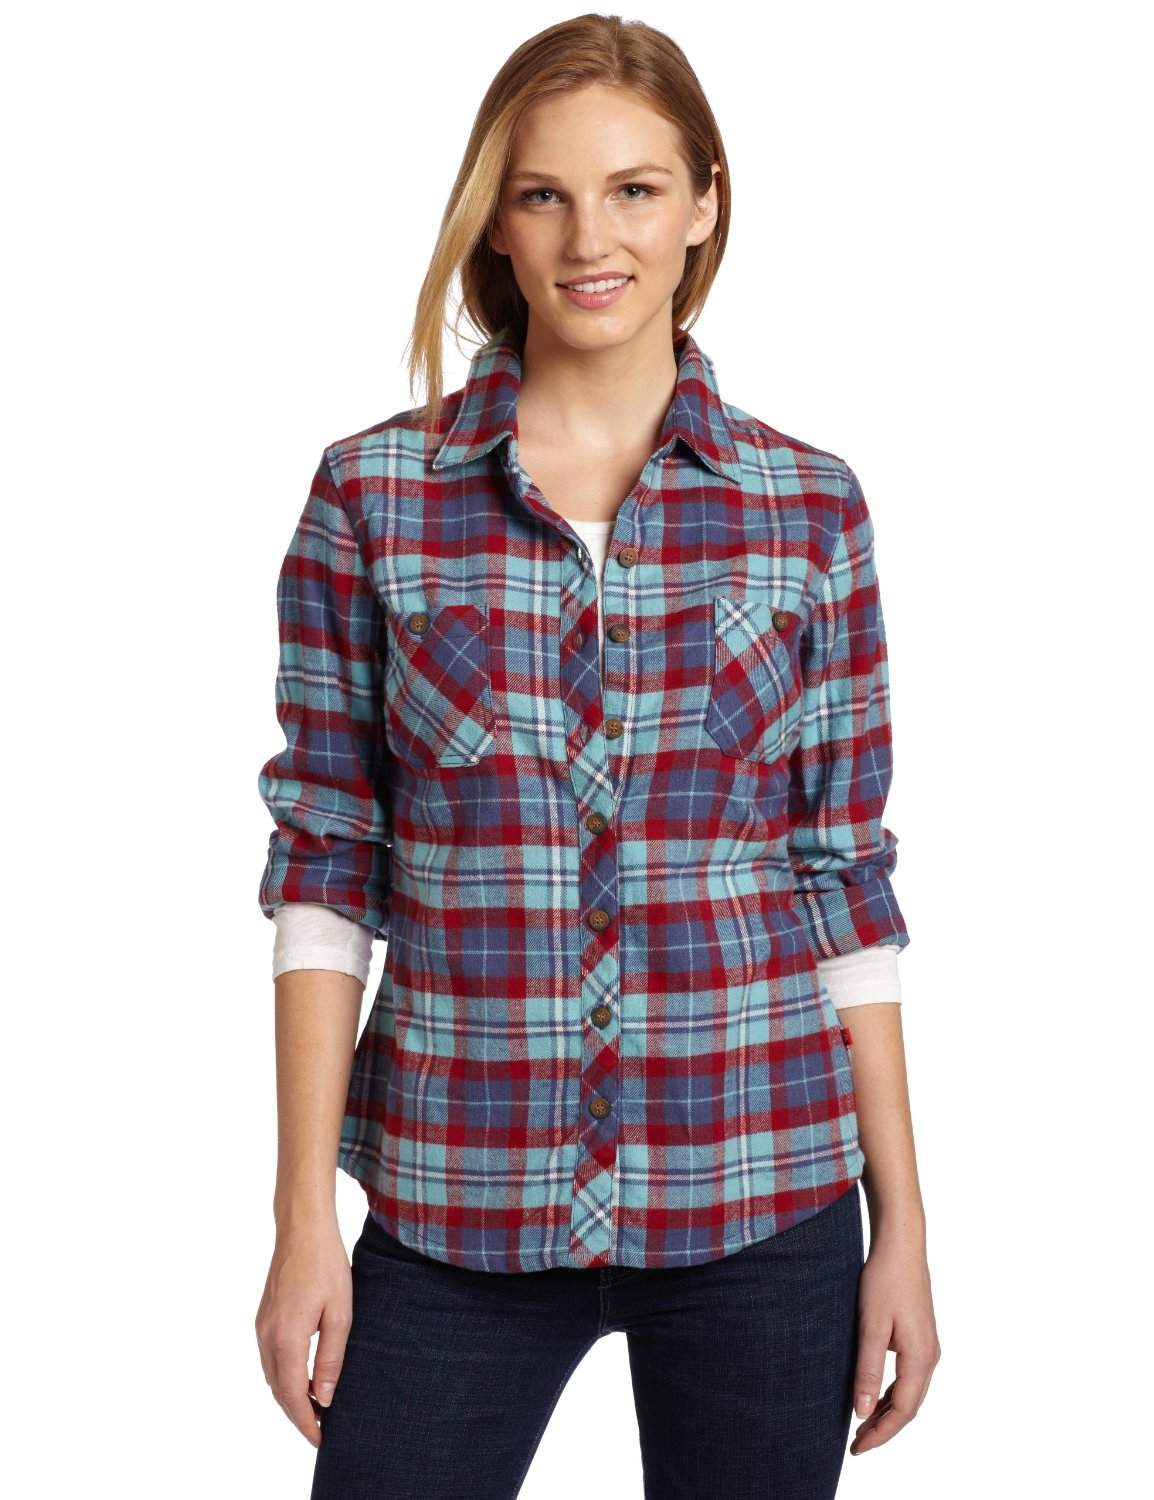 Womens Flannel Shirts | Outfit | Pinterest